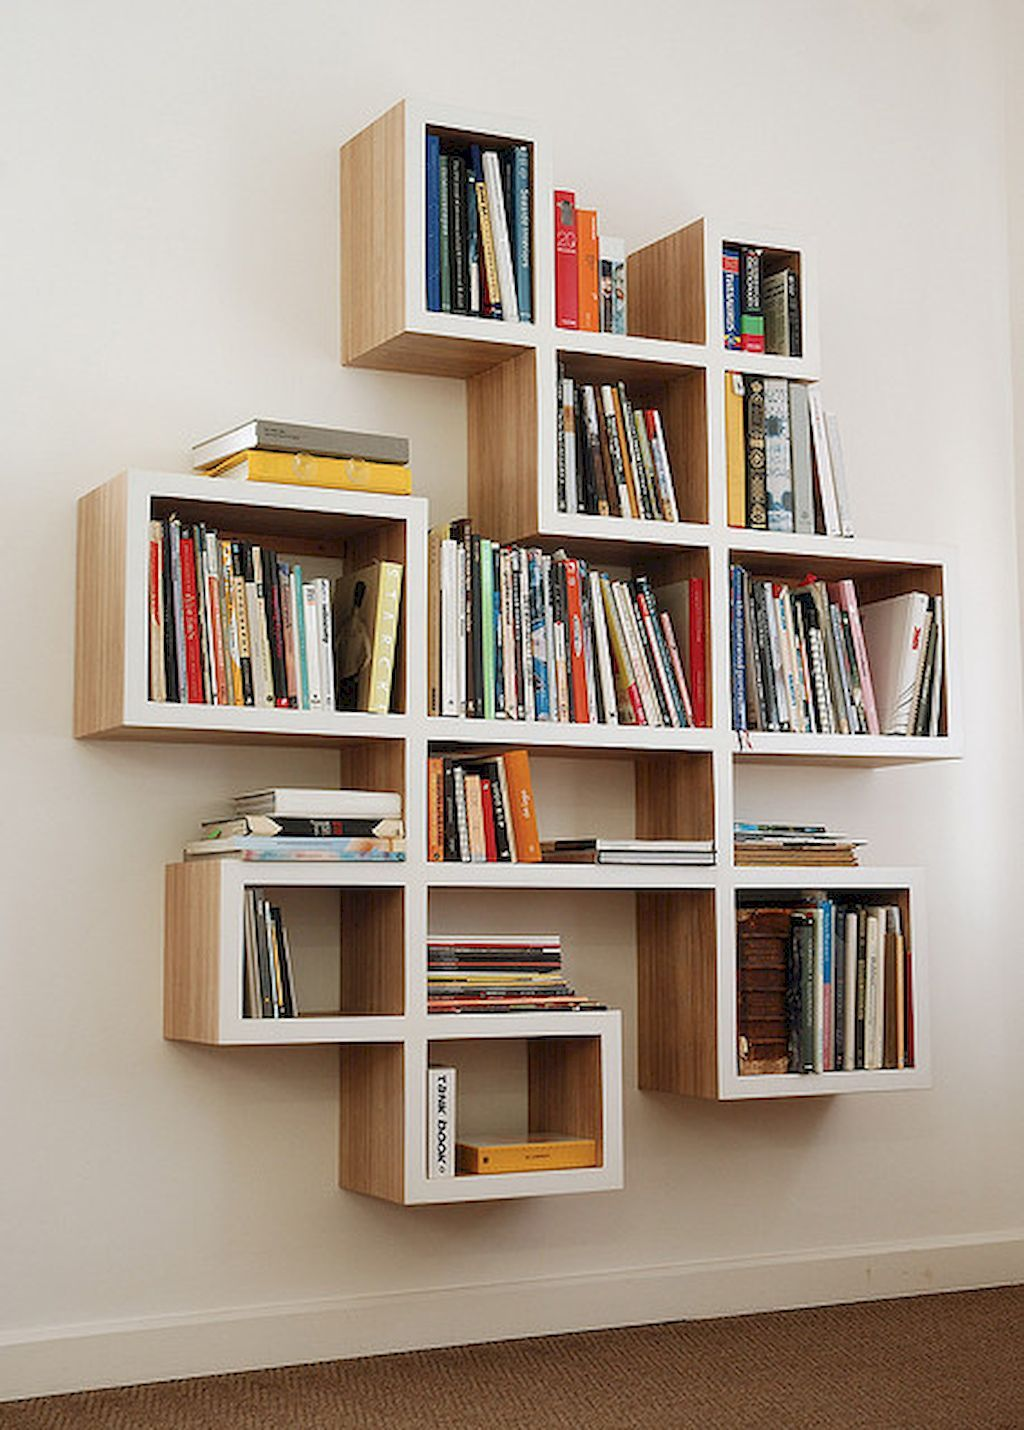 60 cheap diy wall shelves floating ideas wall shelving diy wall 60 cheap diy wall shelves floating ideas amipublicfo Images